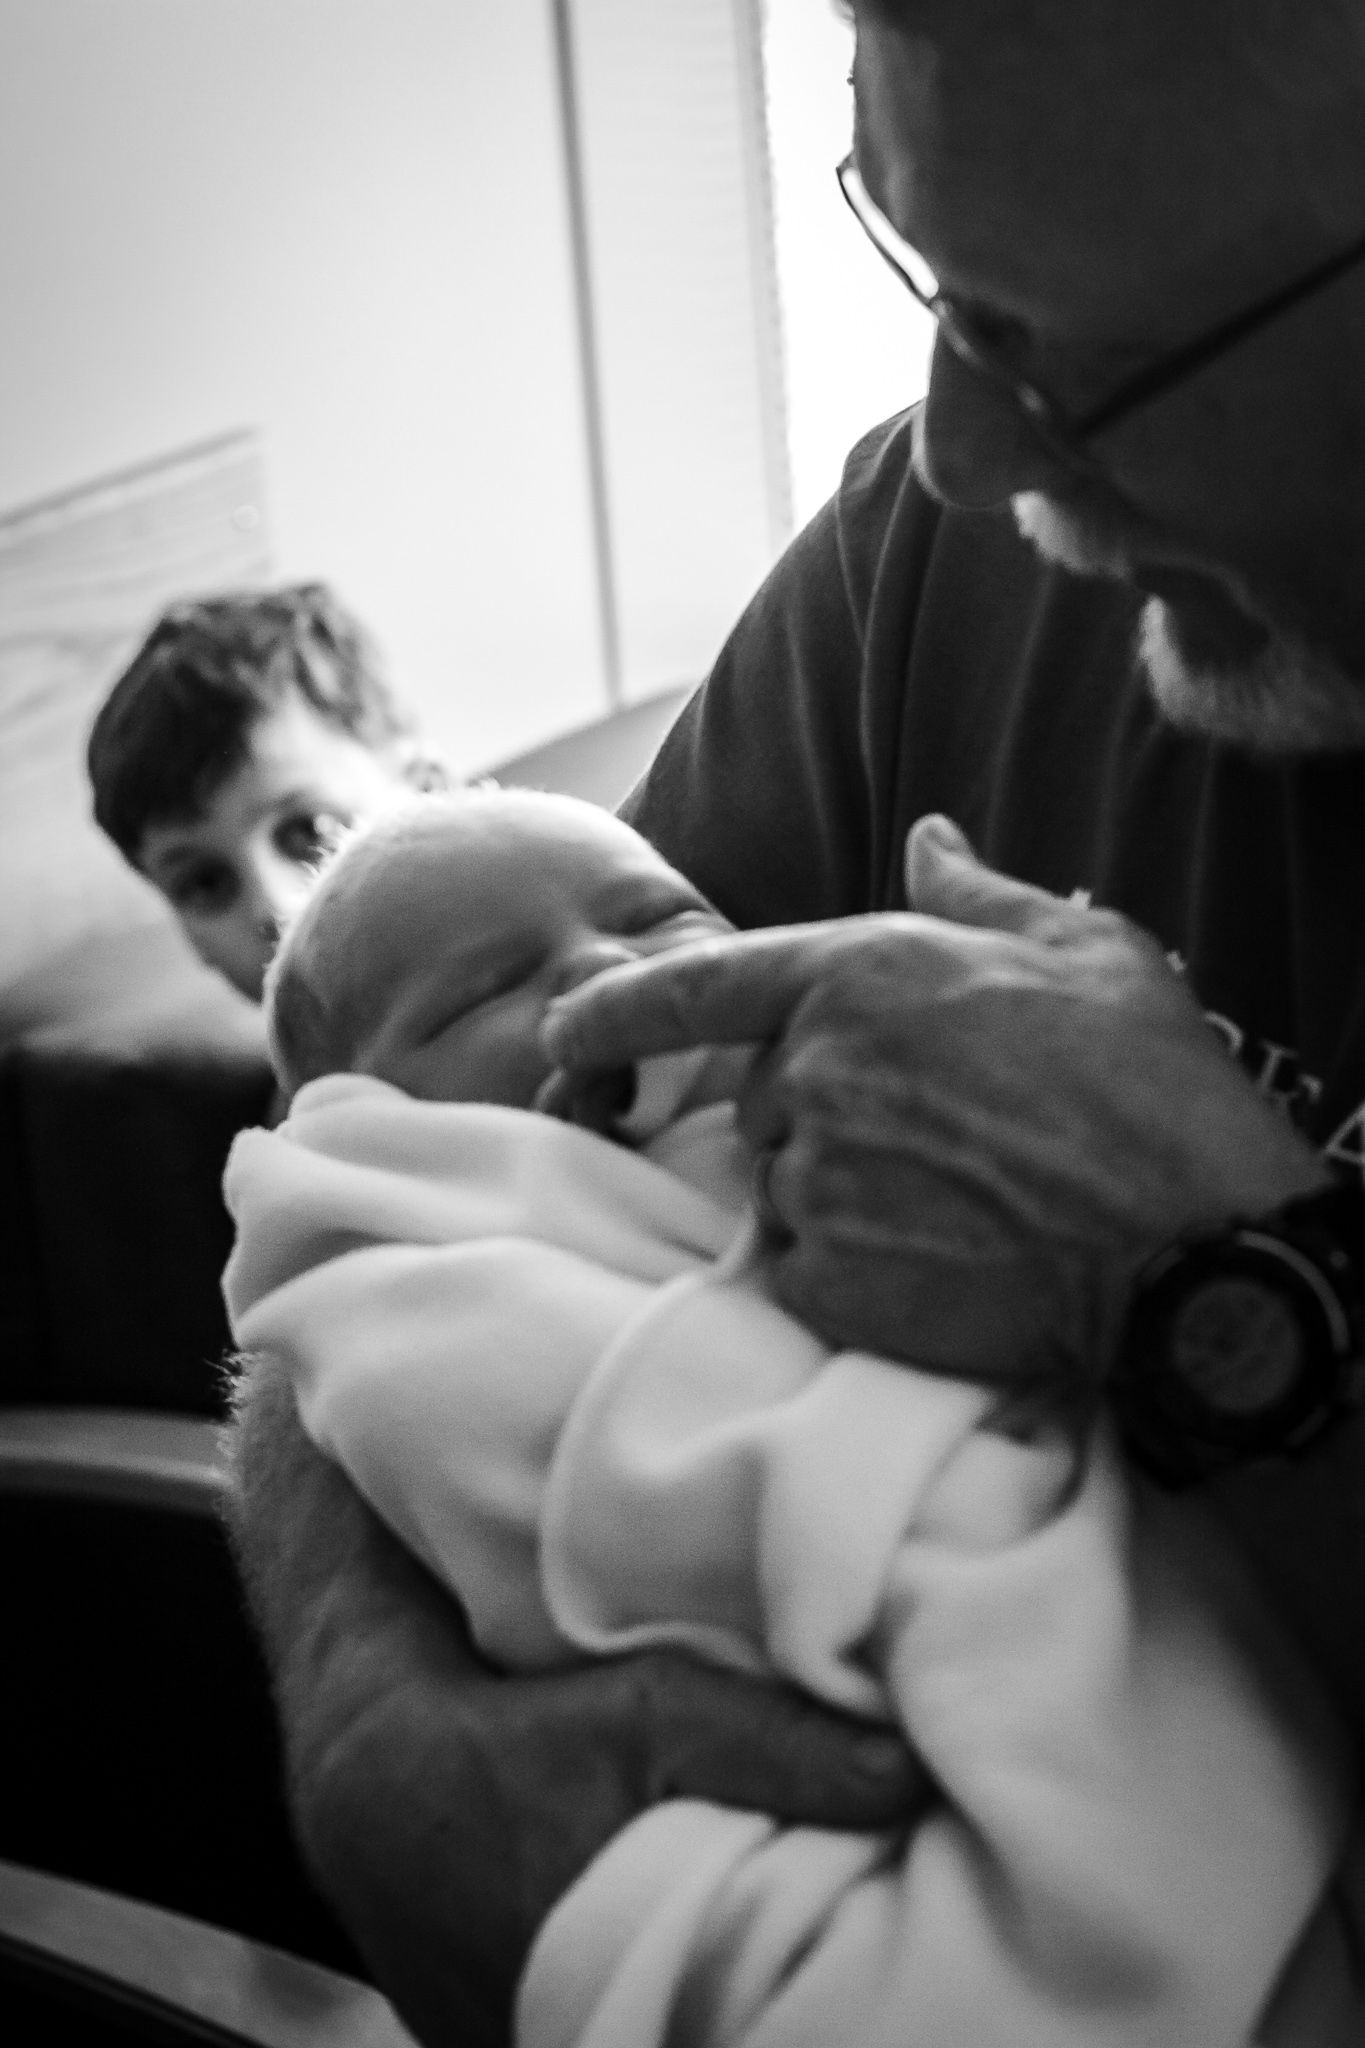 Grandfather holding his newest granddaughter for the first time just after birth.